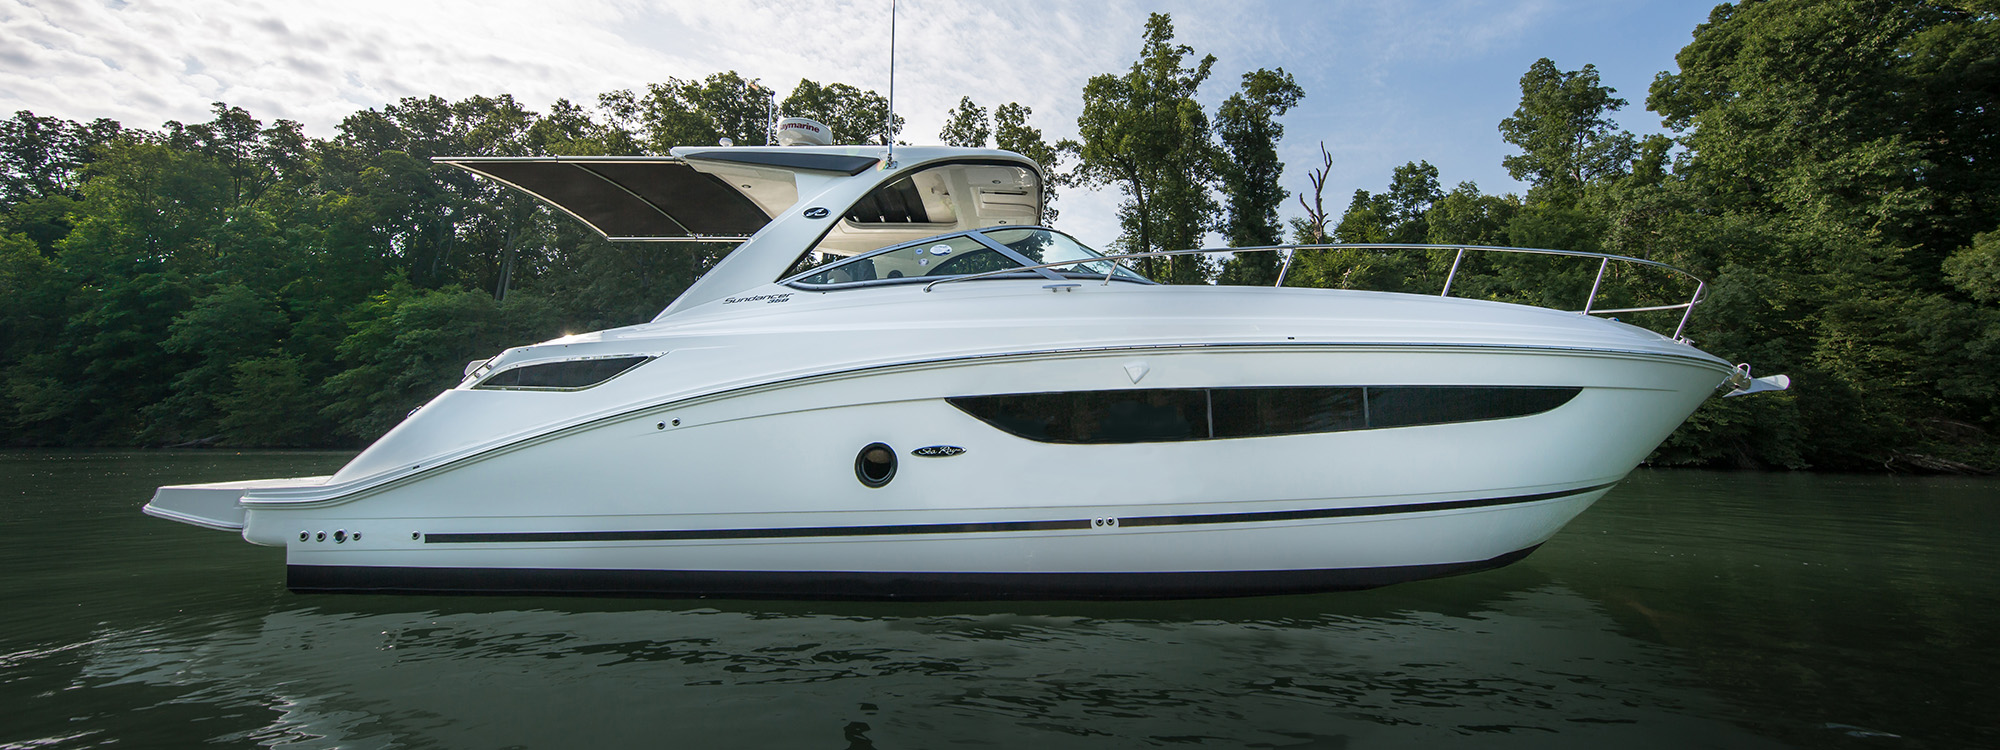 Sea Ray 350 Sundancer side view